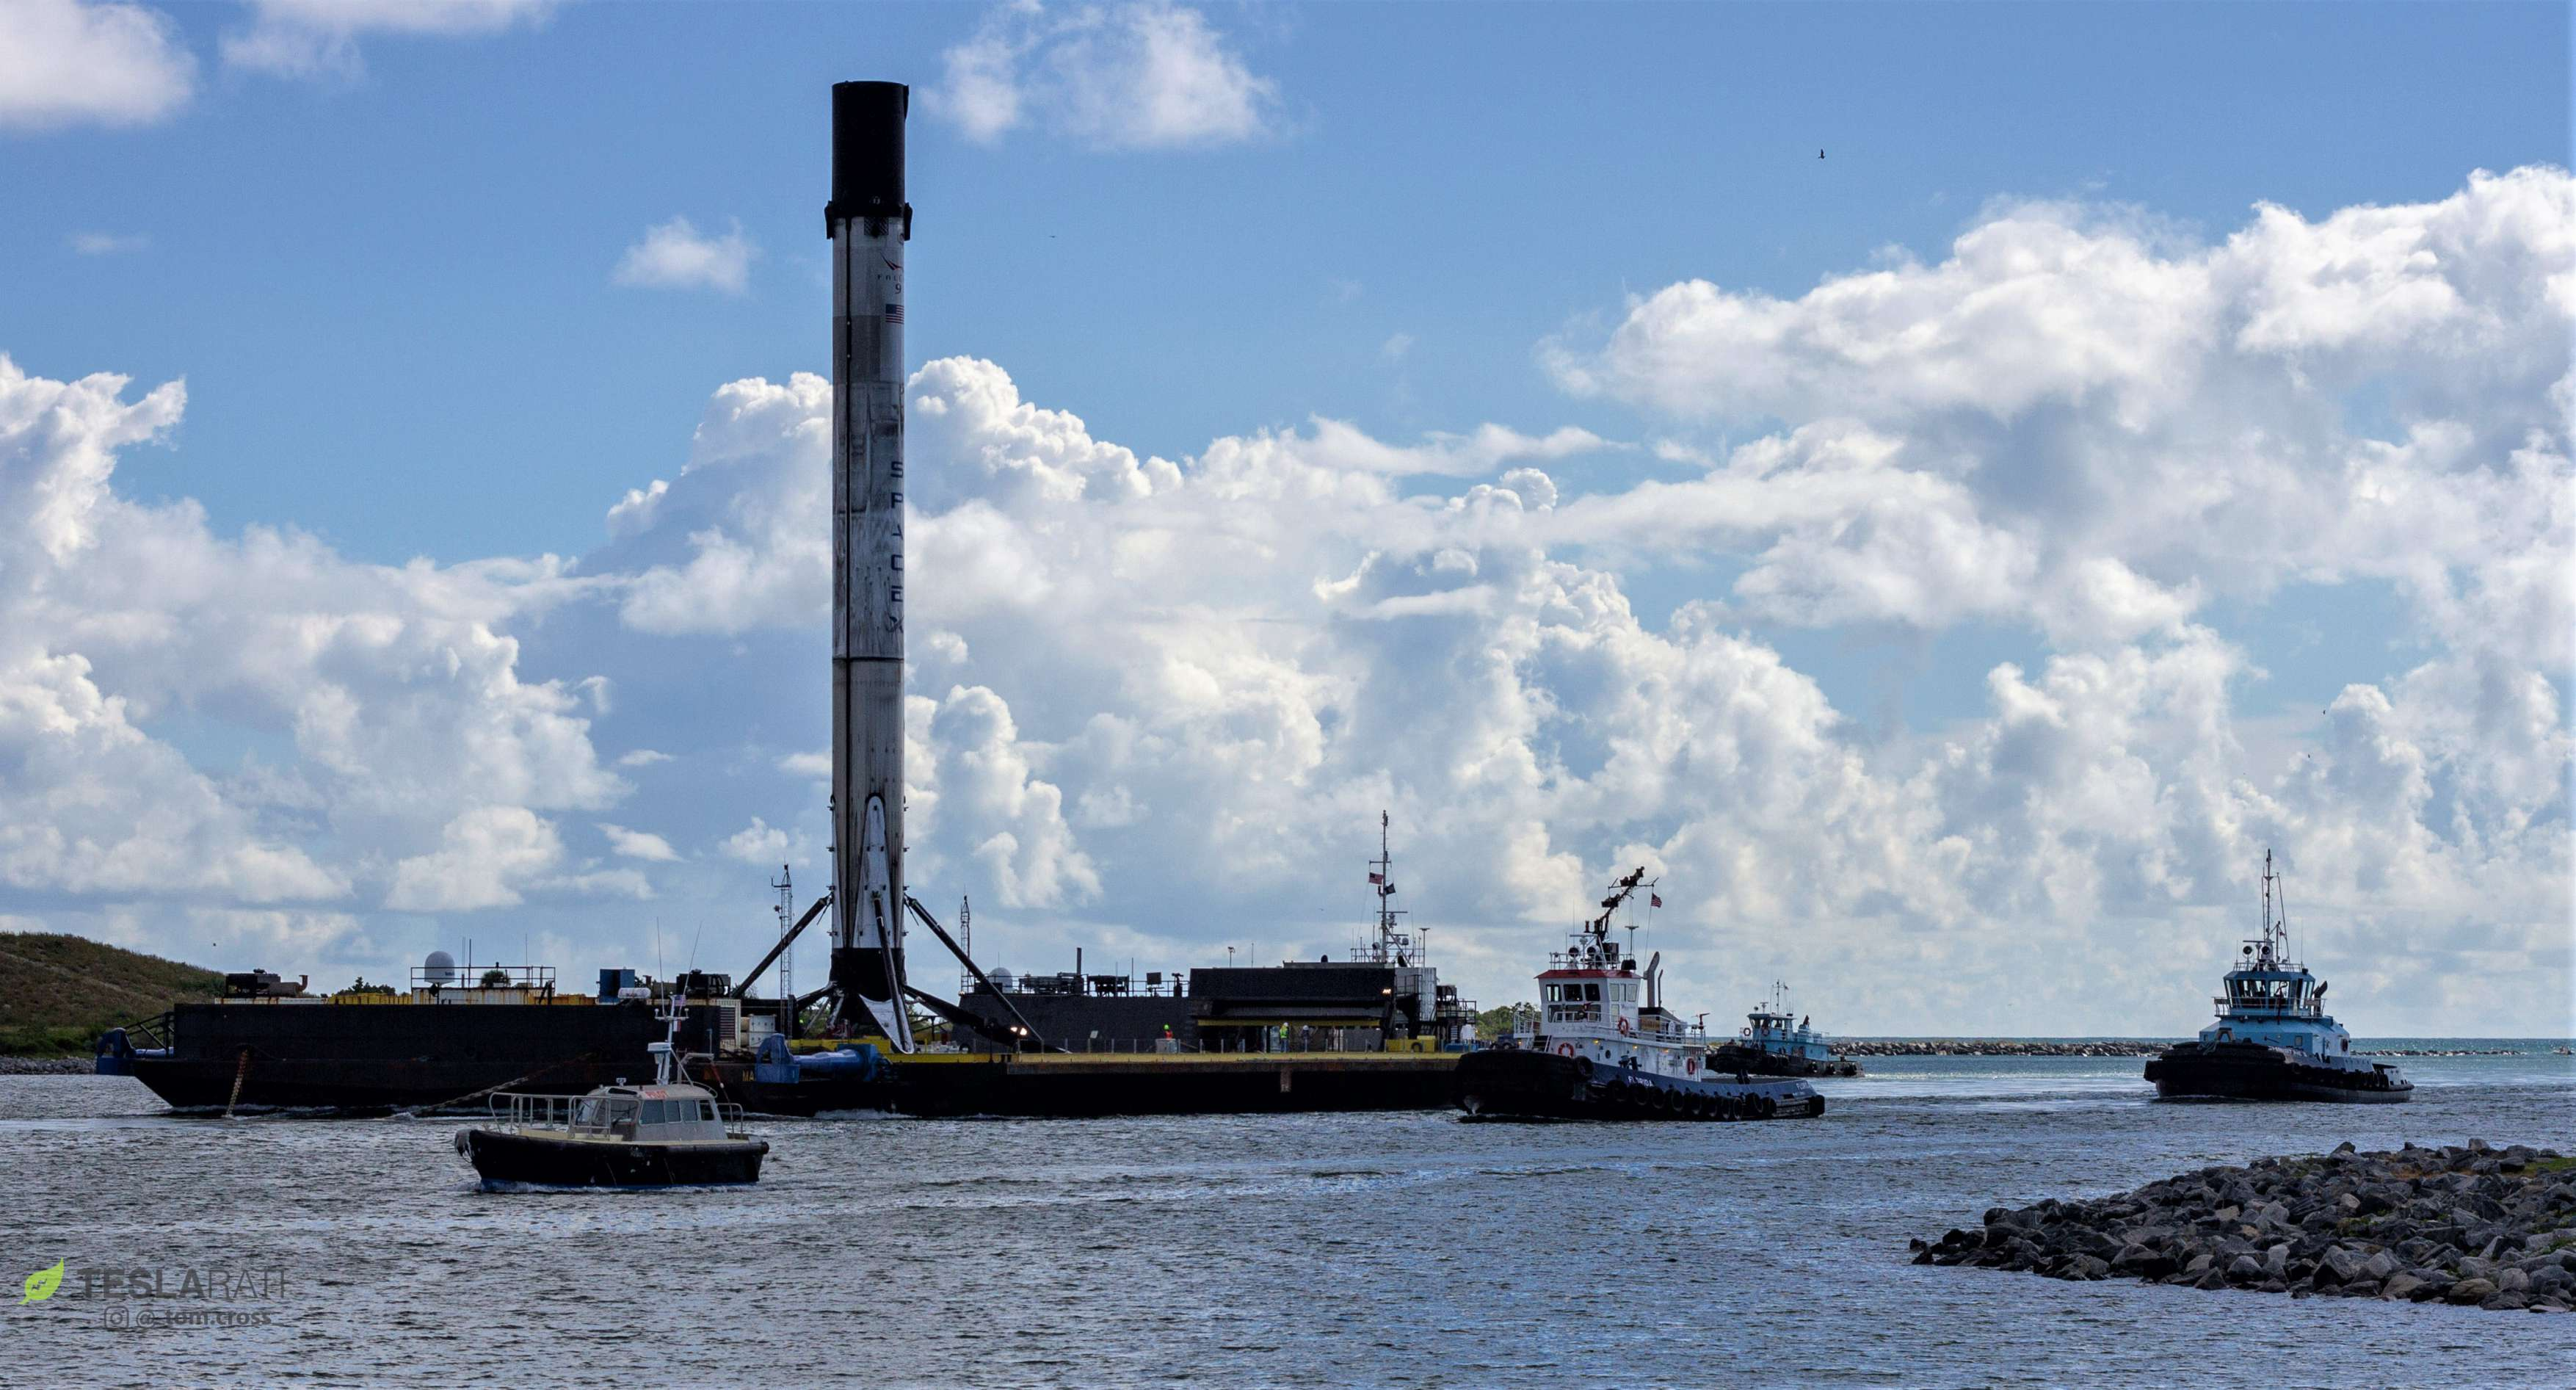 SpaceX's Falcon 9 rocket to launch powerful telecom satellite